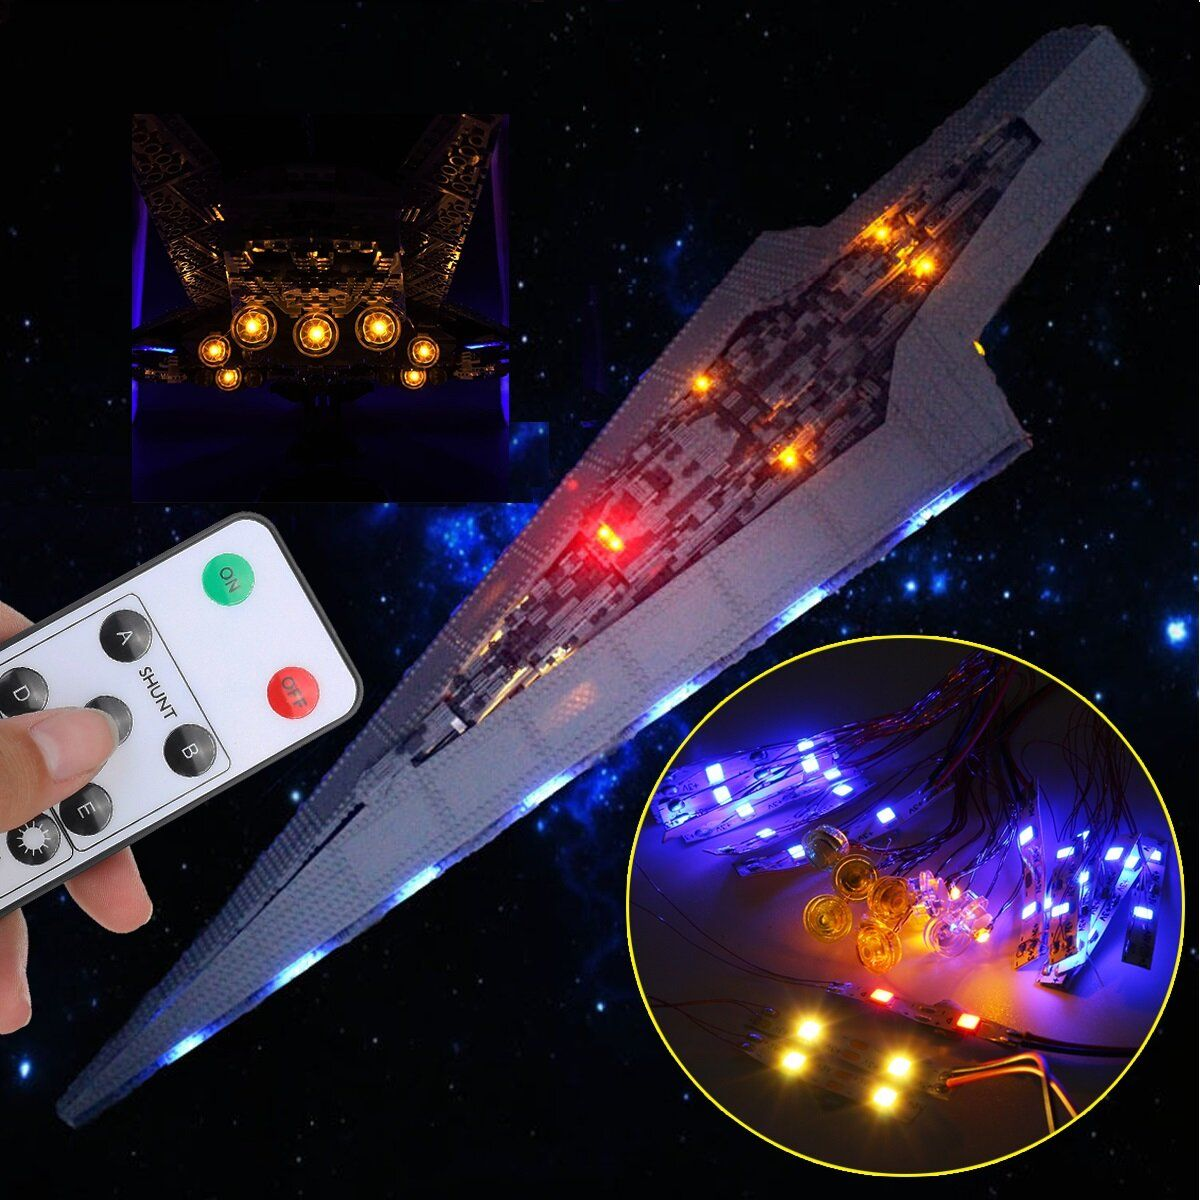 DIY LED Rigid Strip Light Kit ONLY For LEGO 10221 Star Wars Super Star Destroyer Bricks Toy With Remote Control